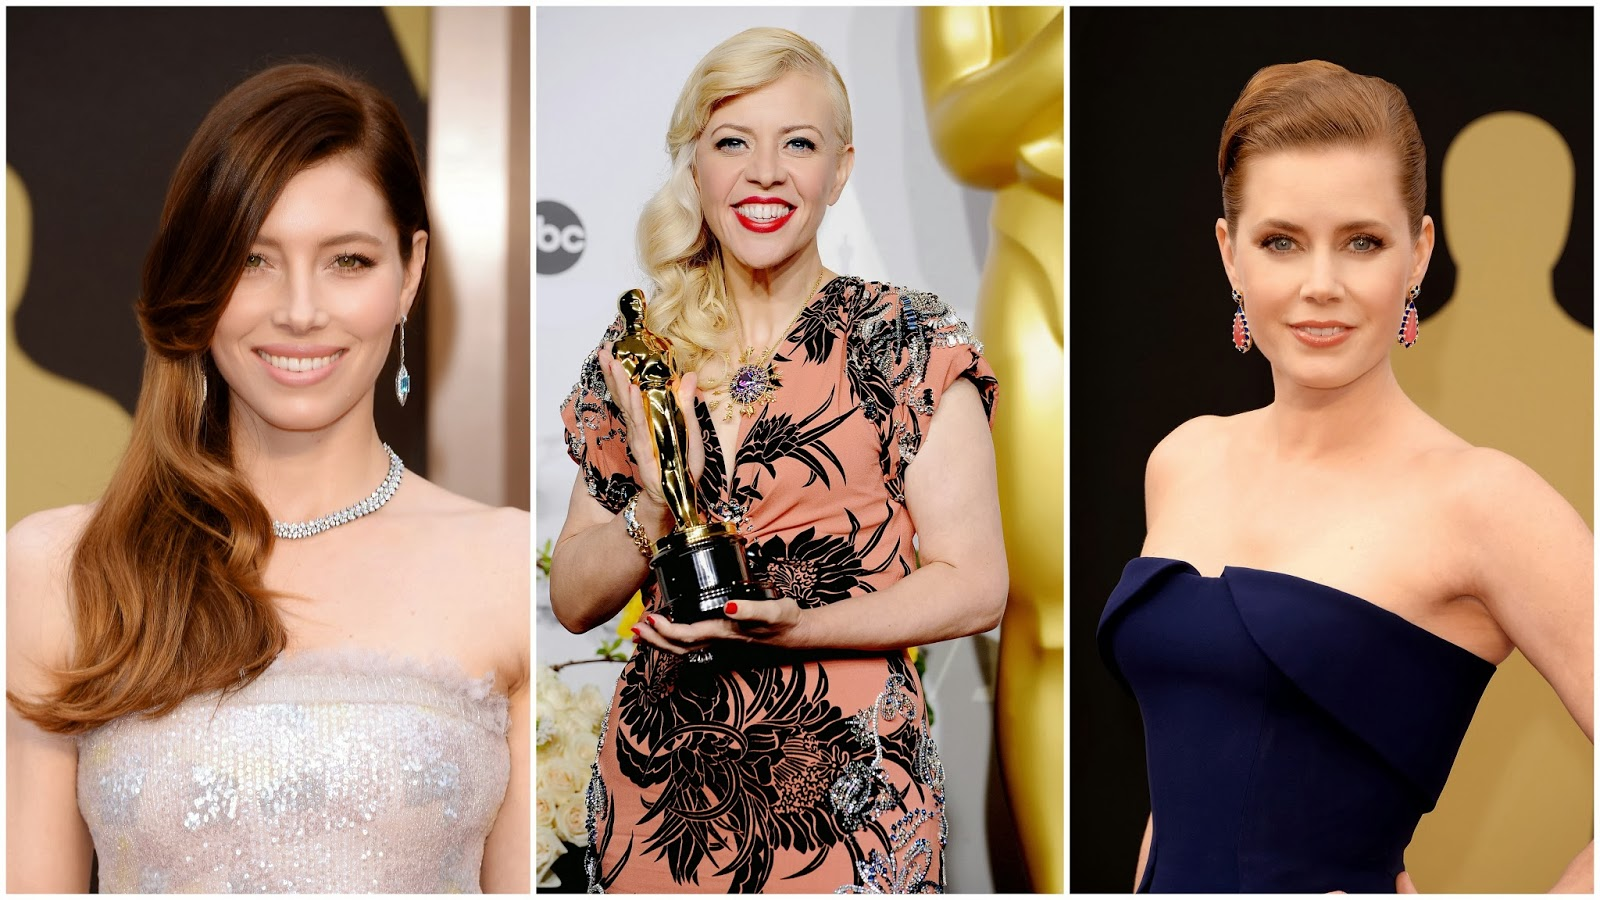 Tiffany jewels sparkled with legendary beauty on Amy Adams and Jessica Biel at the Academy Awards